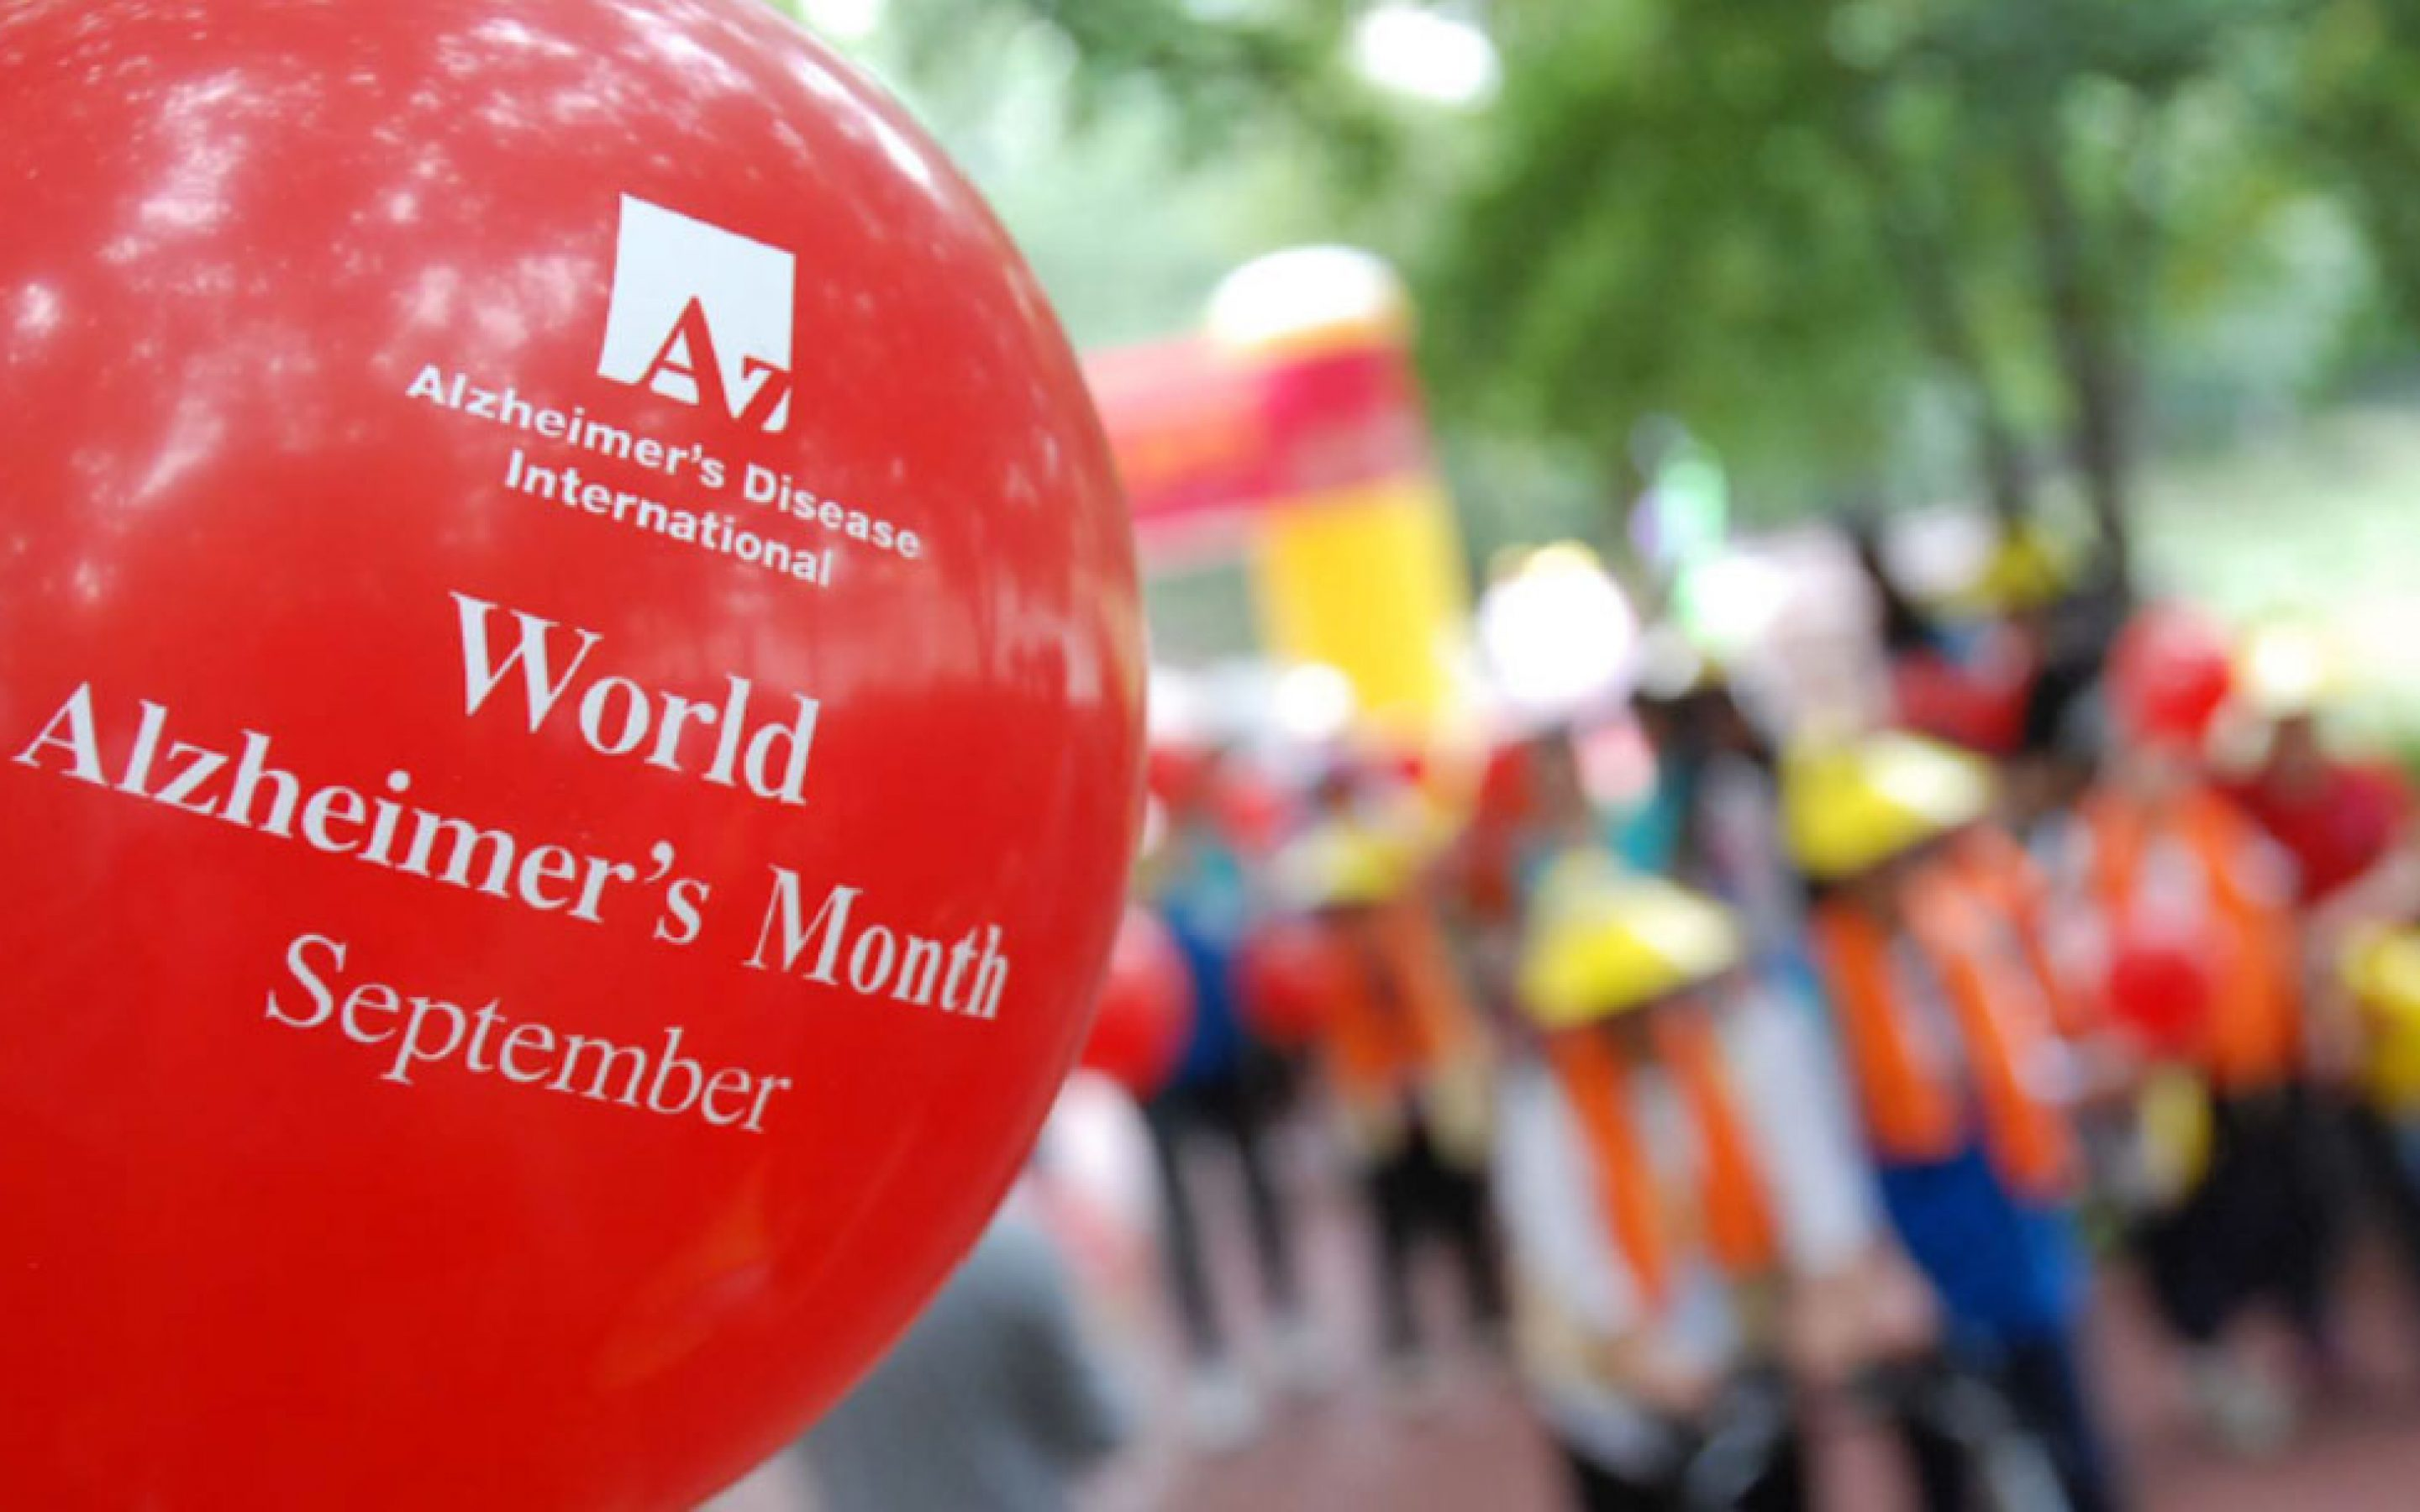 Picture of a red balloon with white lettering stating World Alzheimer's Month, September 2018. World Alzheimer's Day is on September 21st each year and 2018 marks the seventh year of World Alzheimer's Month. If you know someone struggling with memory loss or dementia and have questions or concerns, contact us at Barrington Behavioral Health and Wellness at 888-261-2178 or email: help@barringtonbhw.com